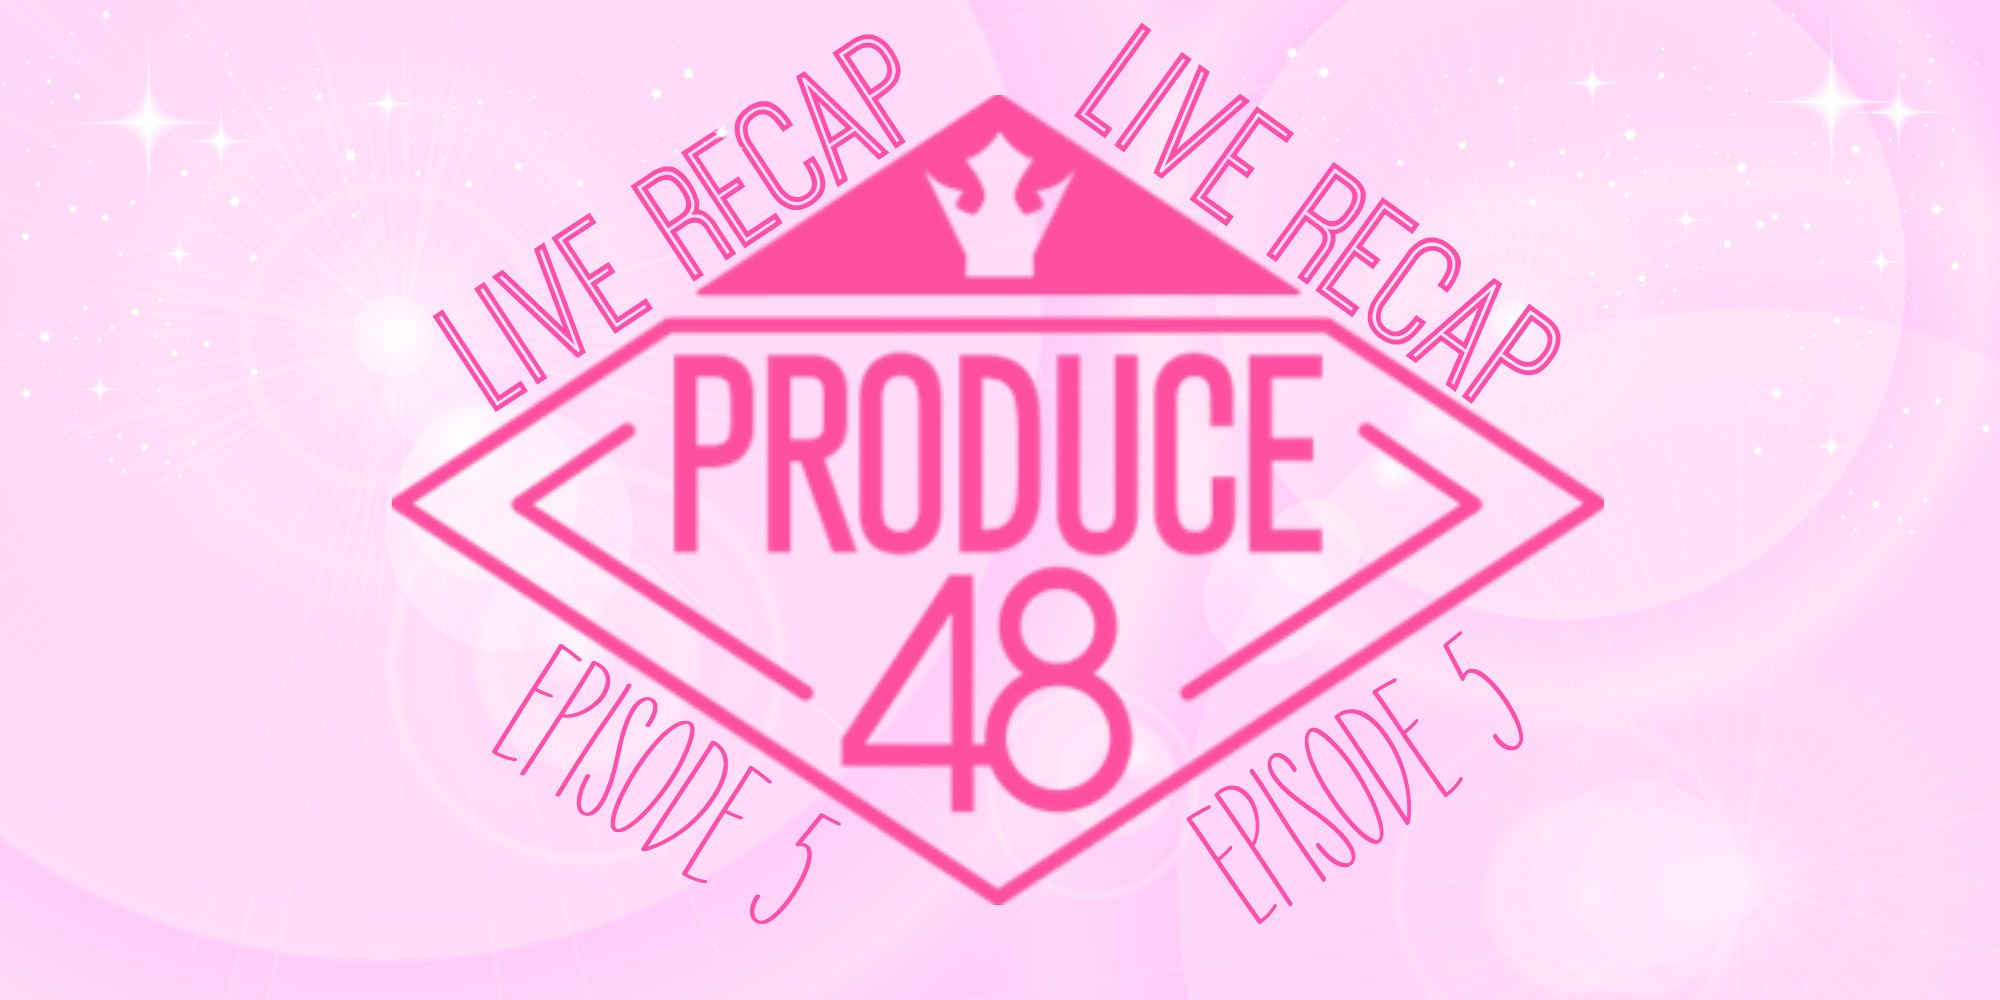 Produce 48 diamond logo Live Recap English translation for Episode 6